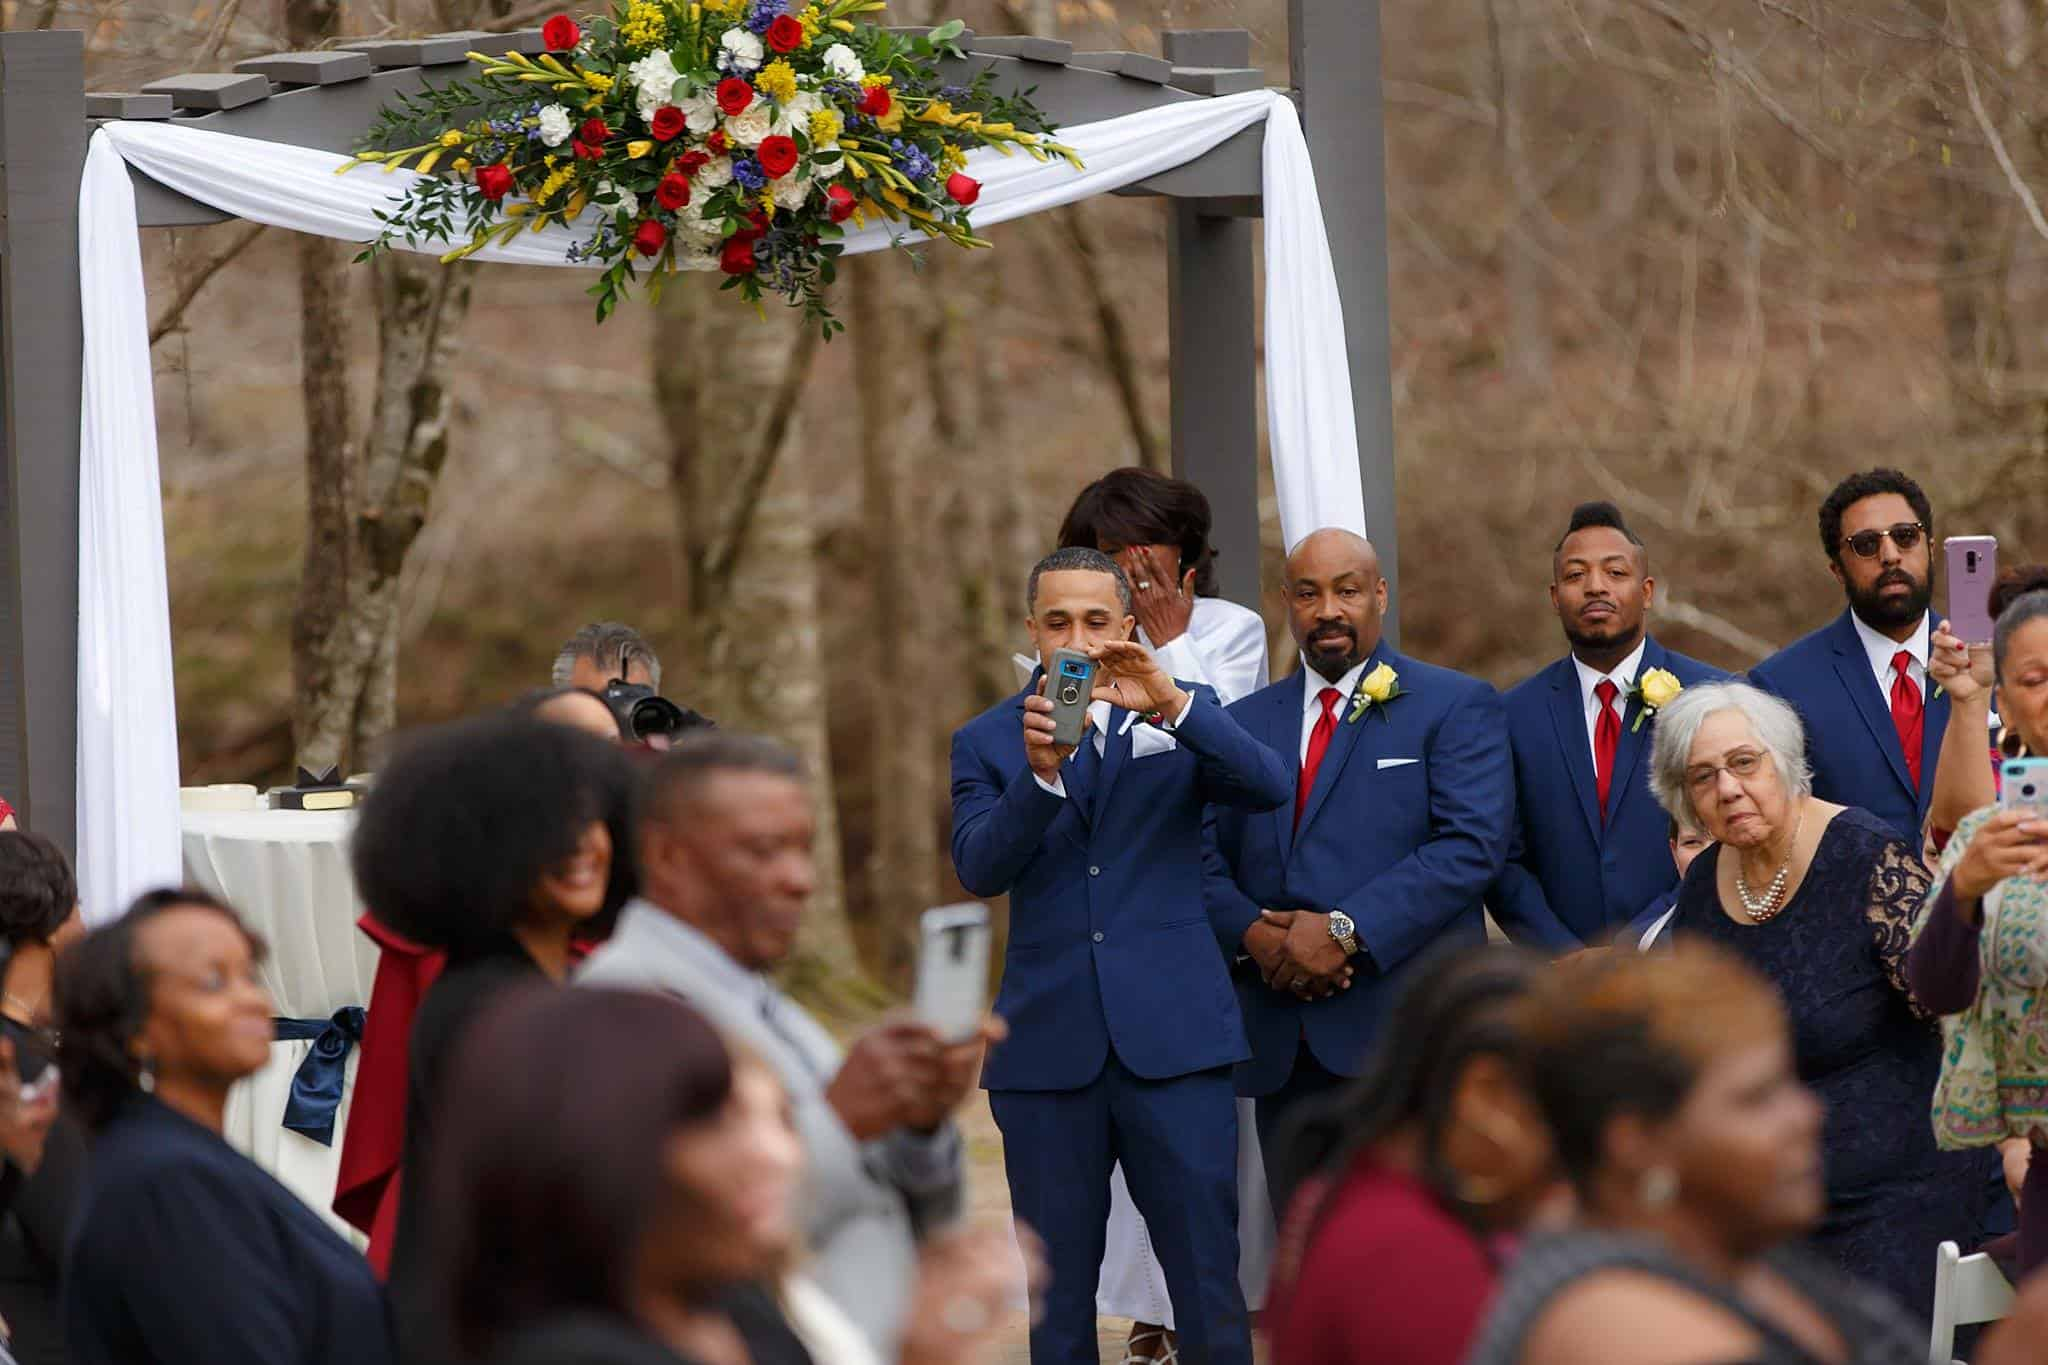 Groom at Altar takes photo of Bride Walking Down the Aisle in Outdoor Wedding Ceremony